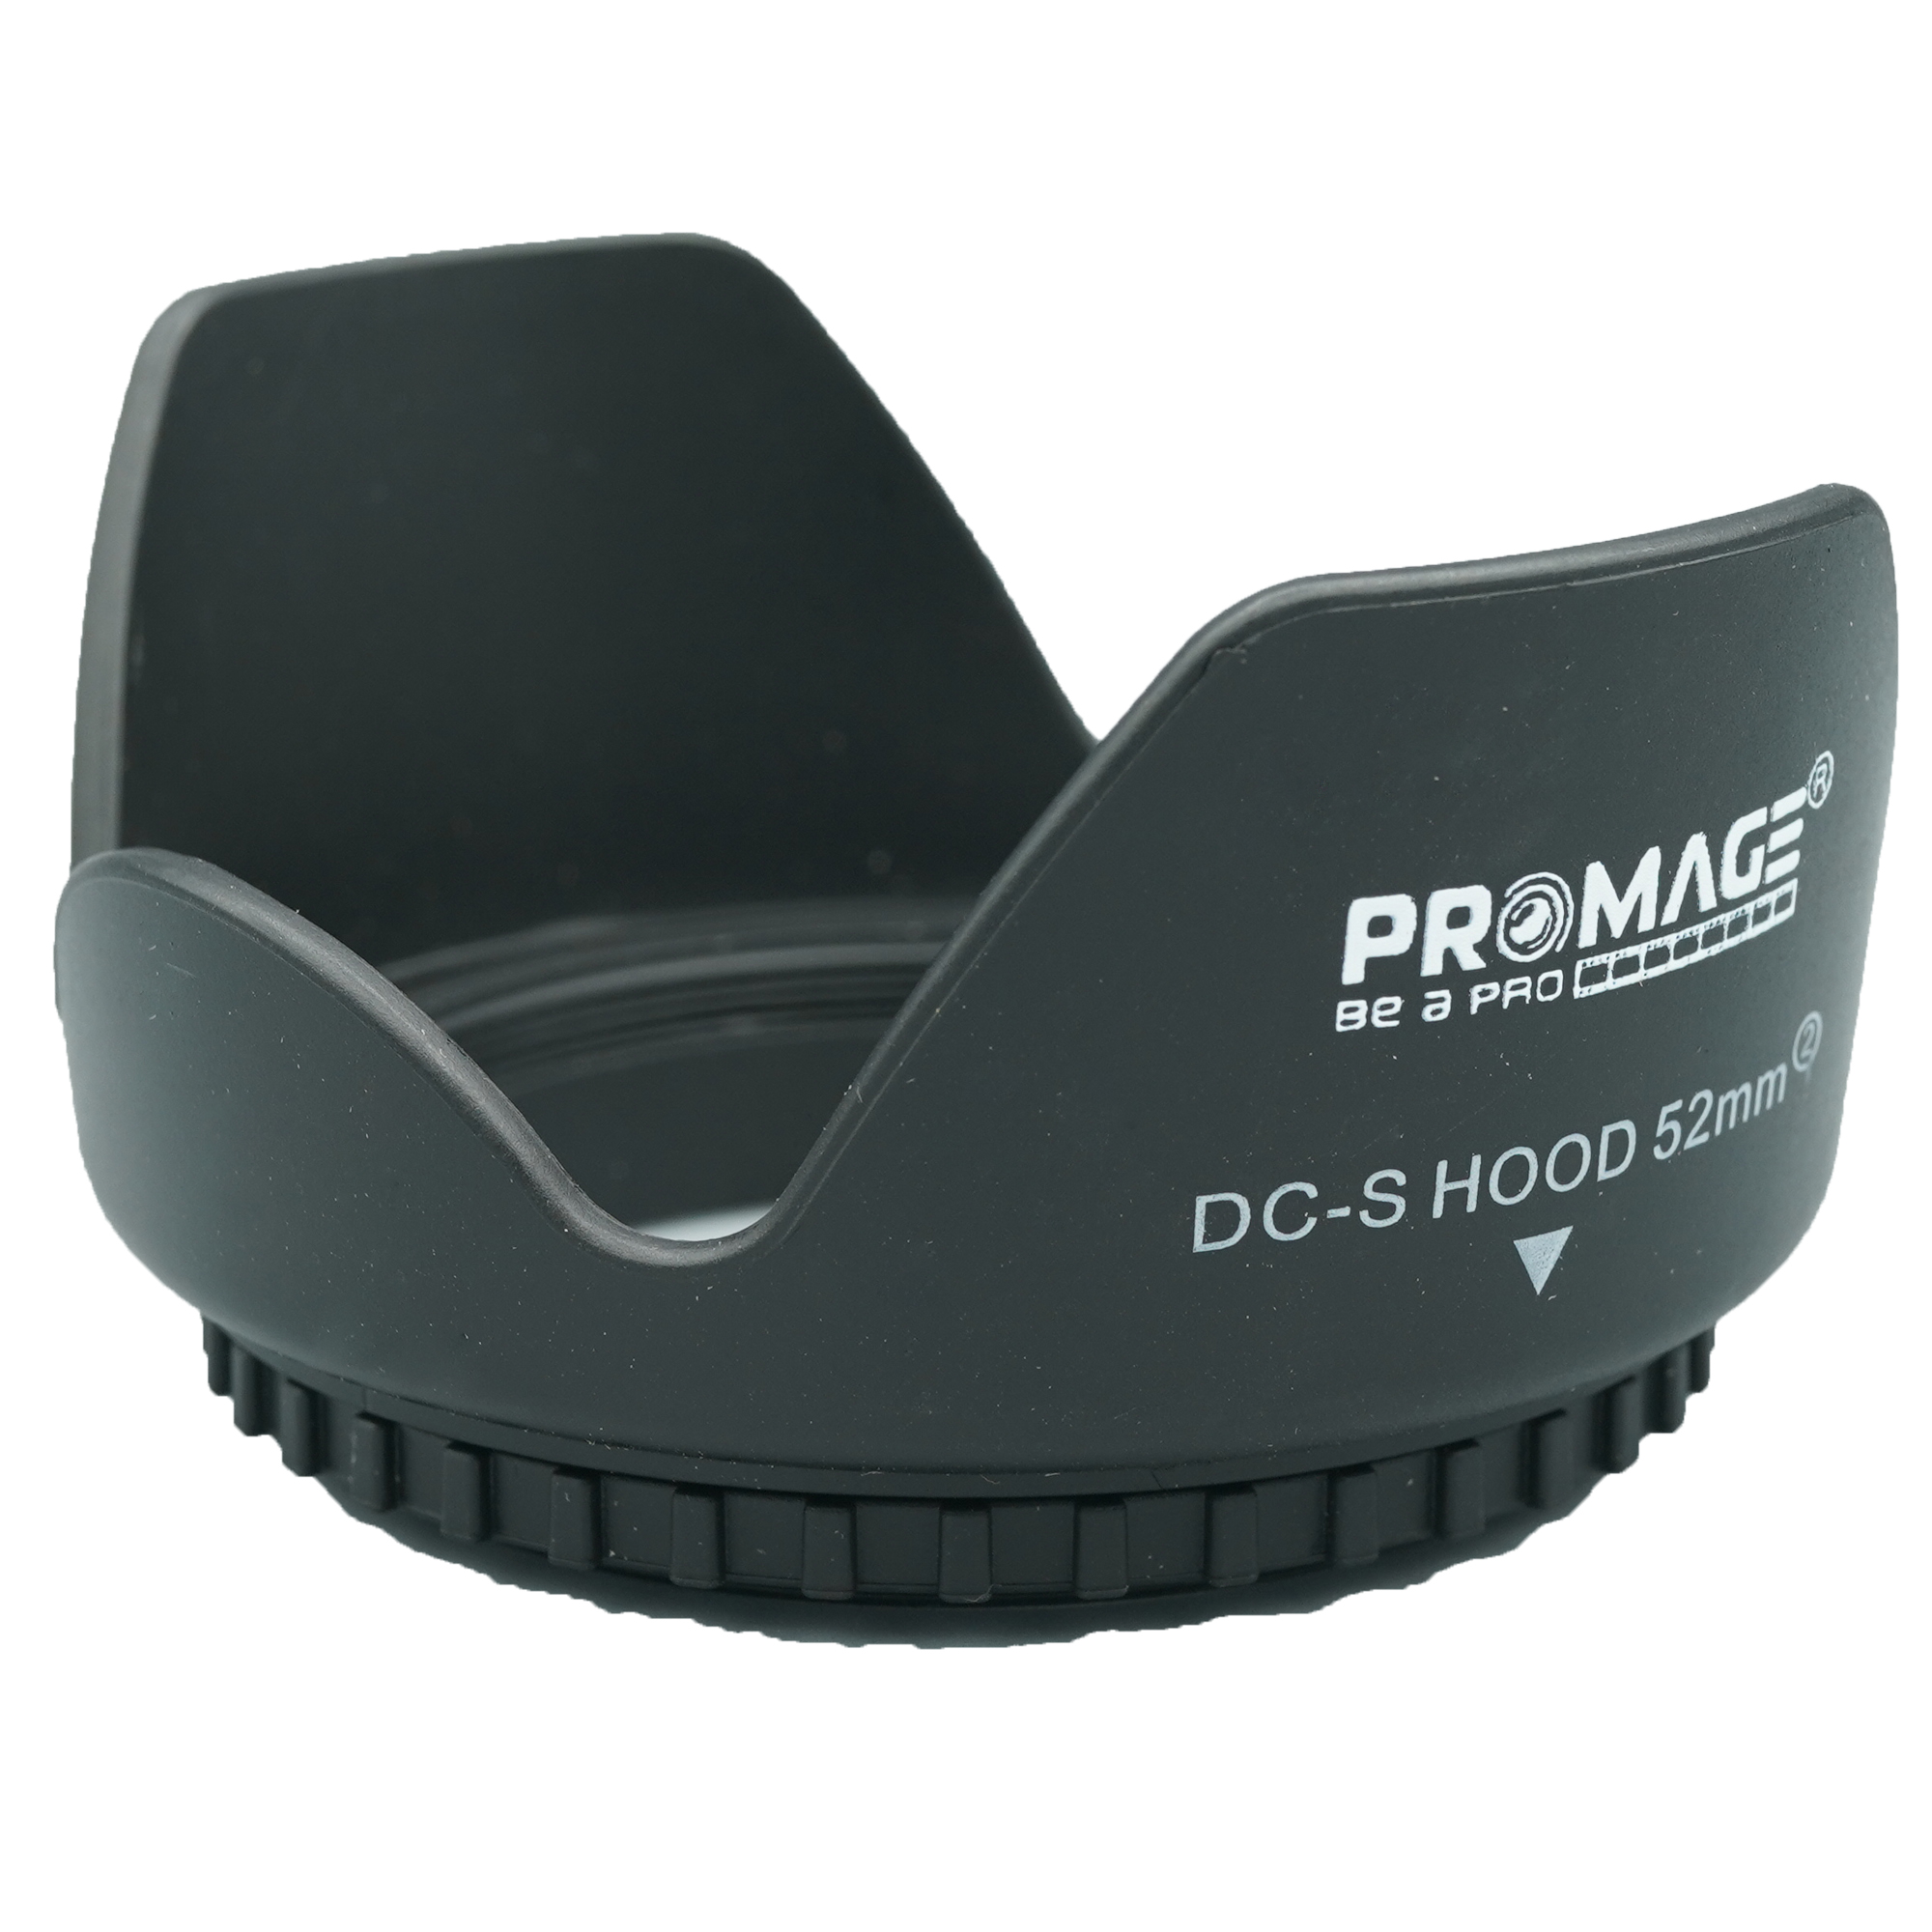 PROMAGE REVERSABLE BUCLE LENS HOOD-52MM Lens Accessories Cabel & Accessories